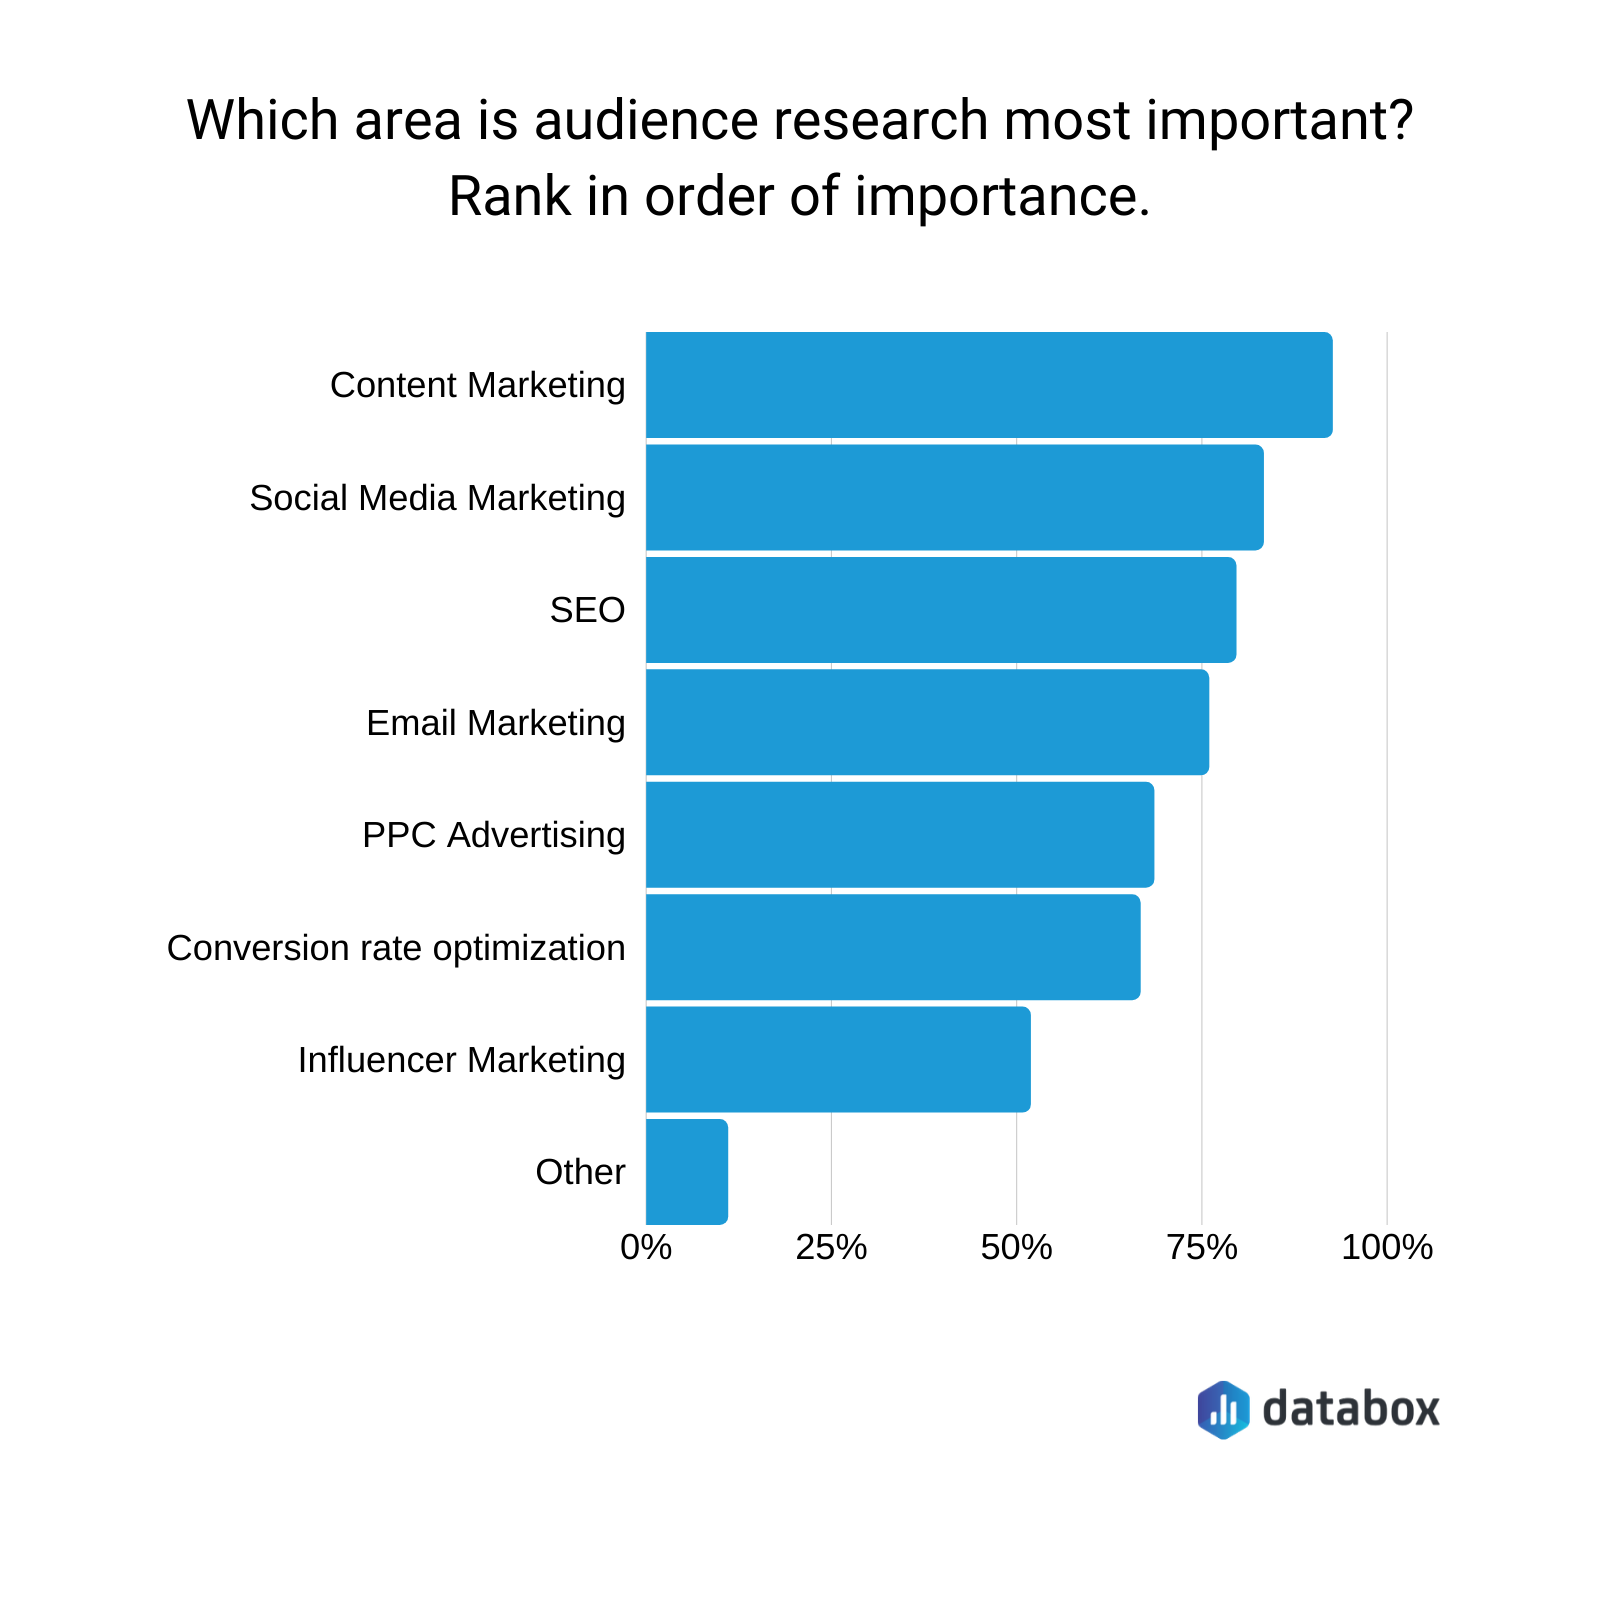 which area is audience research most important?